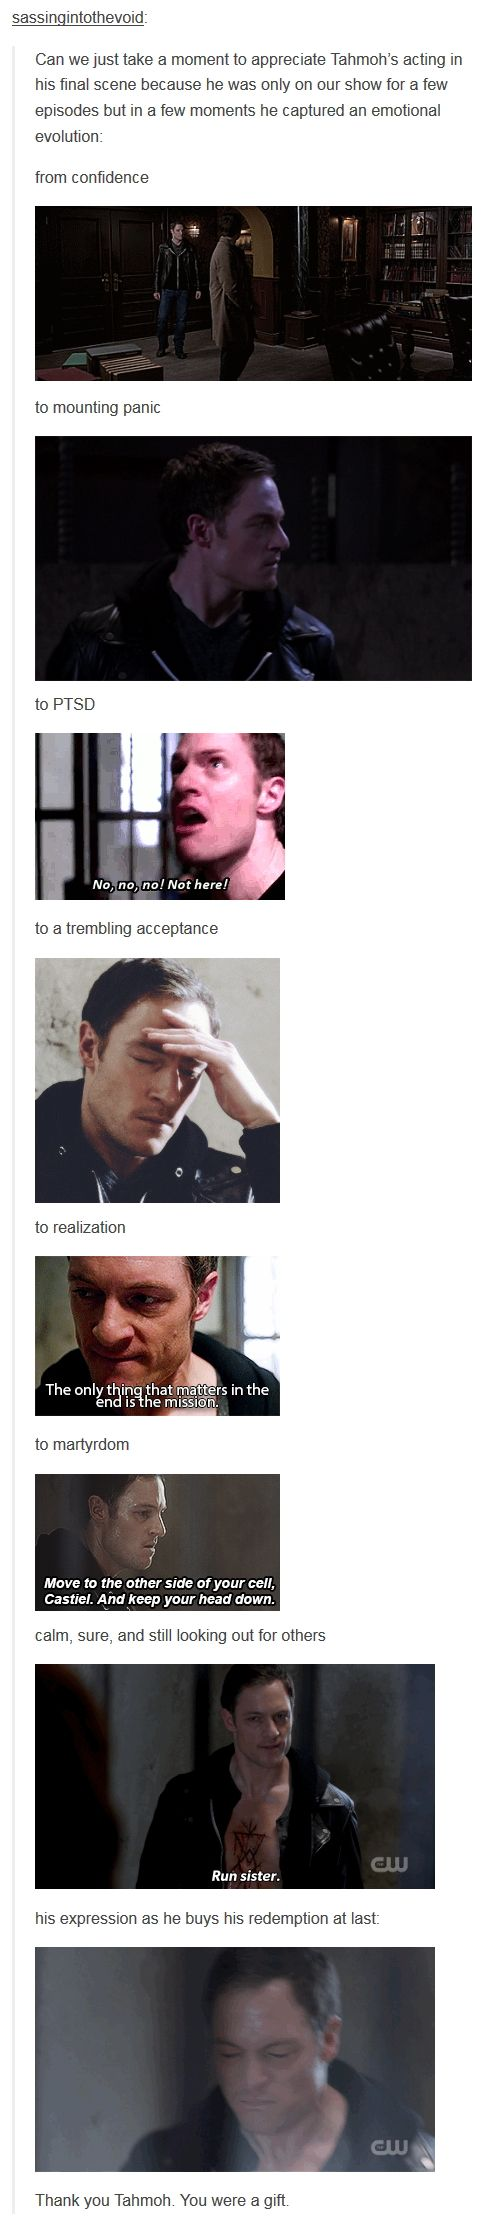 9x23 Do You Believe In Miracles [gifset] - Tahmoh Penikett and acting - he did wonderful job as Gadreel